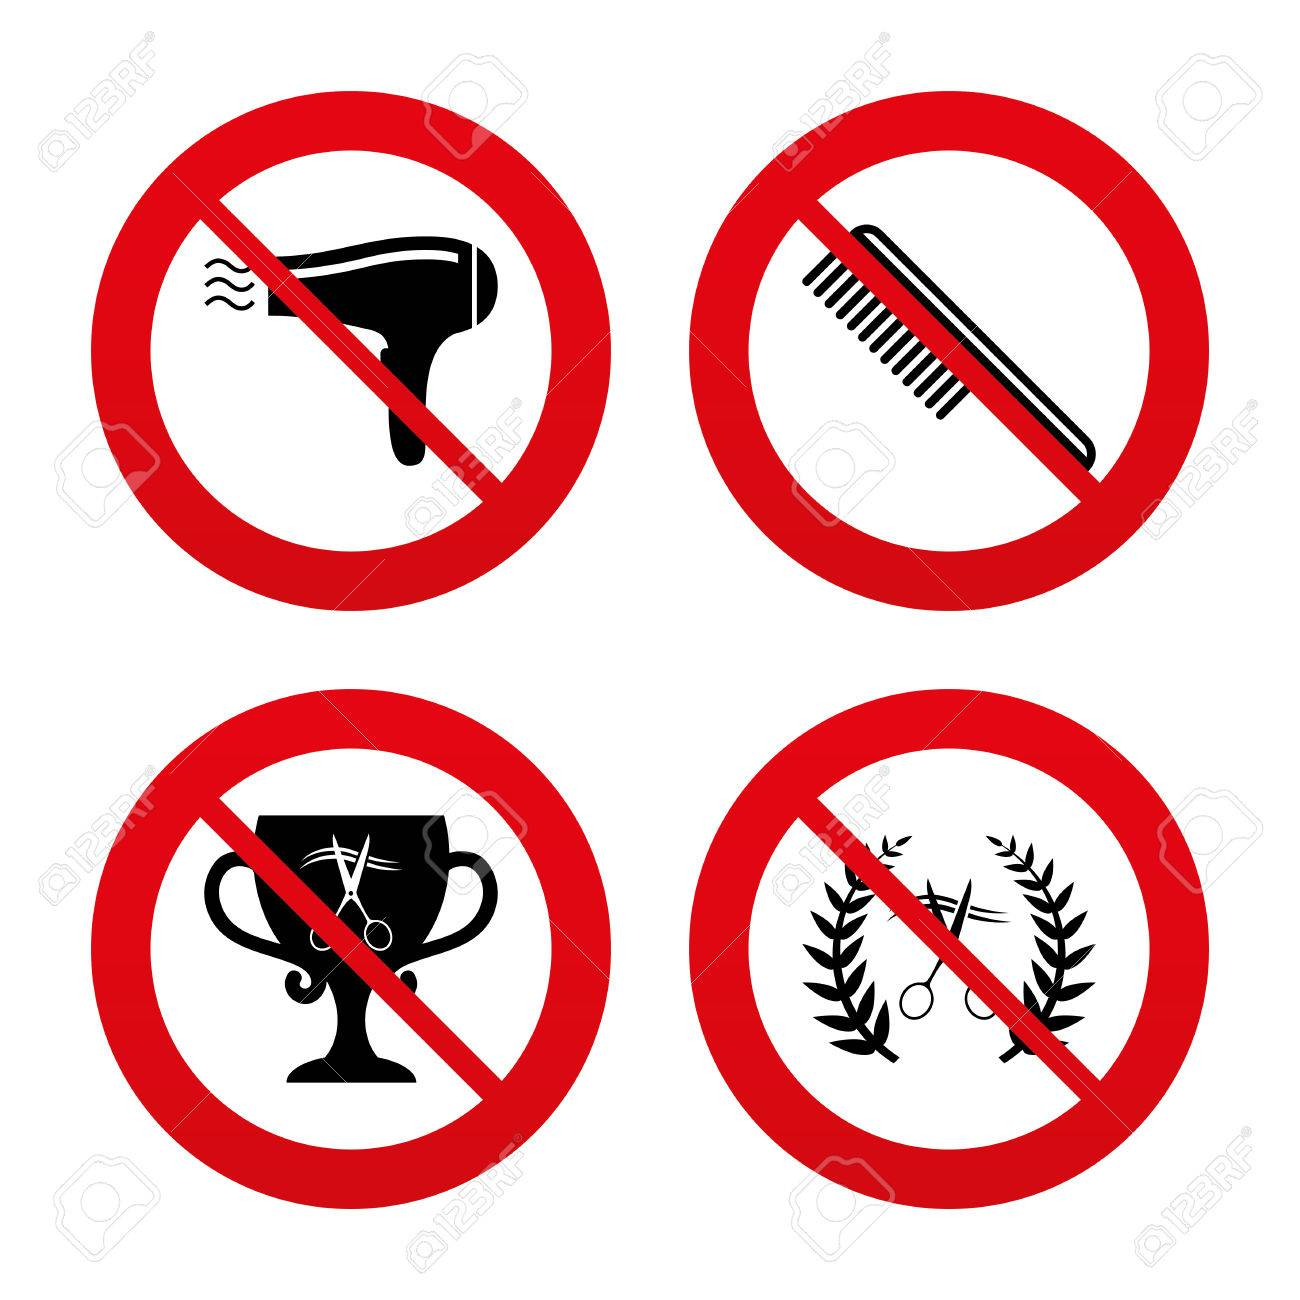 No ban or stop signs hairdresser icons scissors cut hair symbol no ban or stop signs hairdresser icons scissors cut hair symbol comb biocorpaavc Choice Image